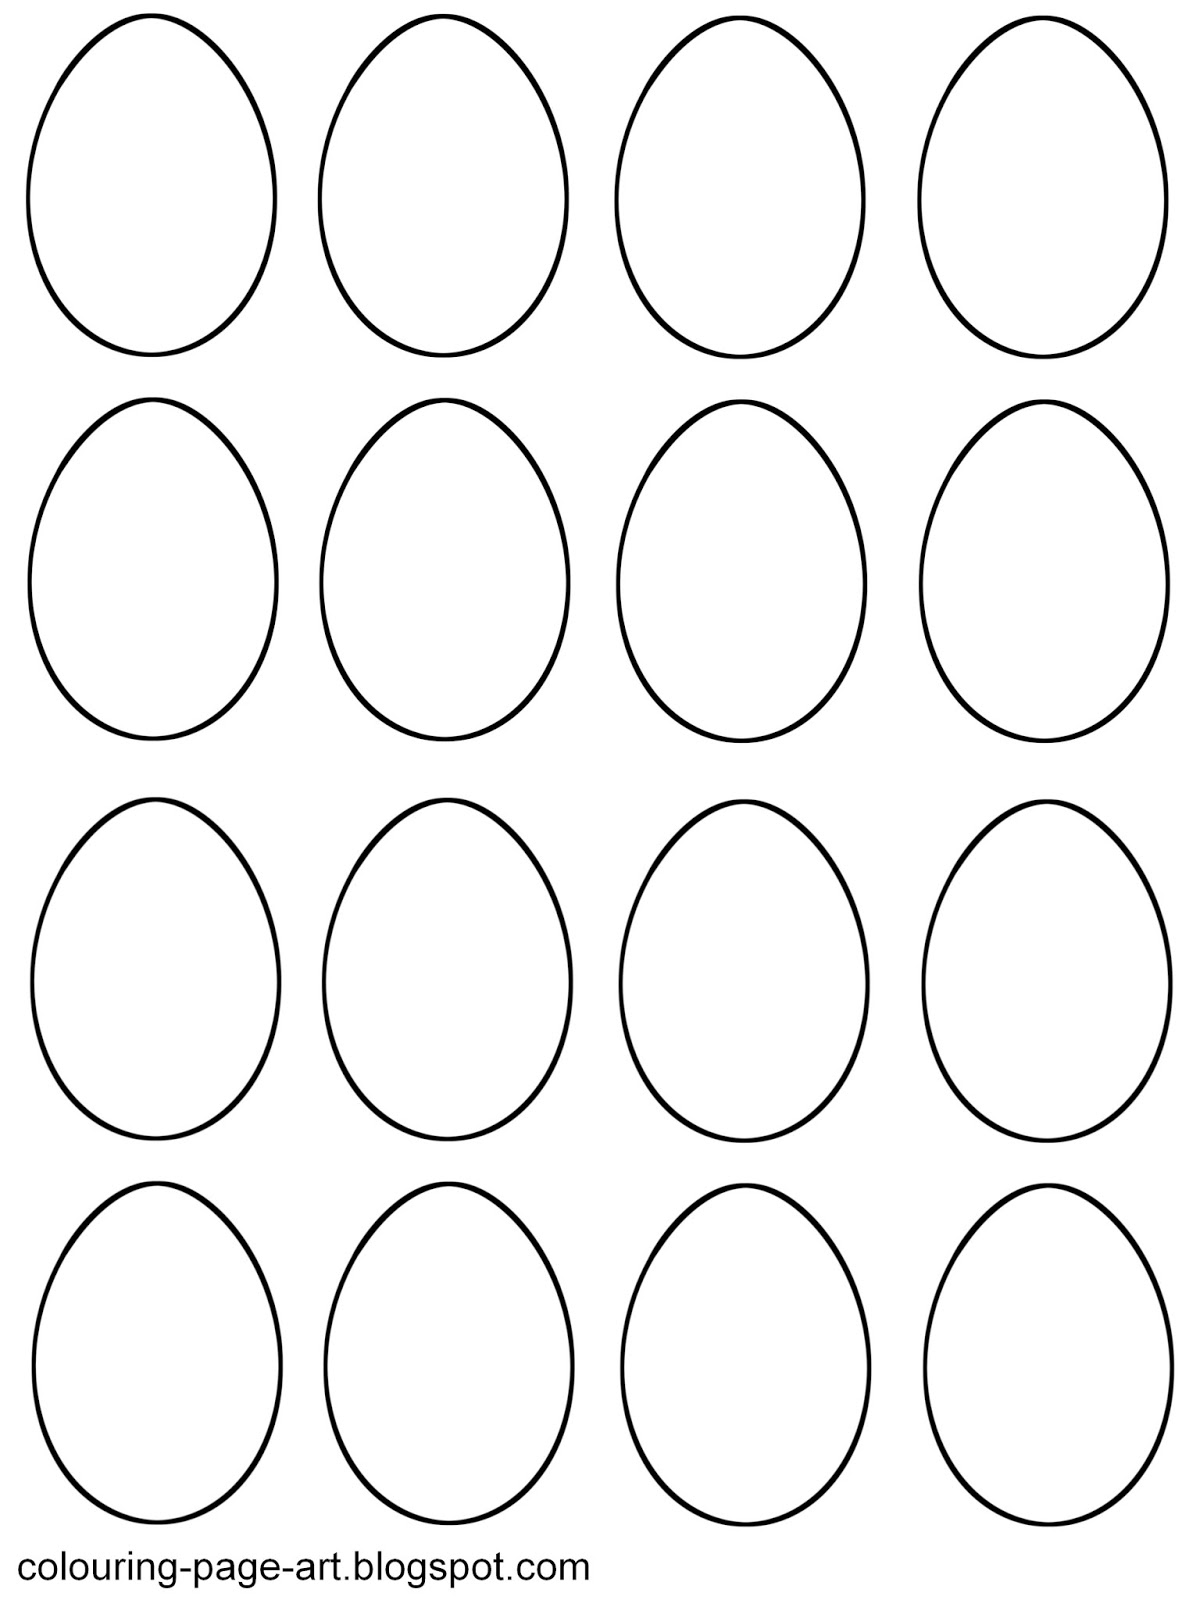 blank easter egg templates colouring page art With small easter egg template